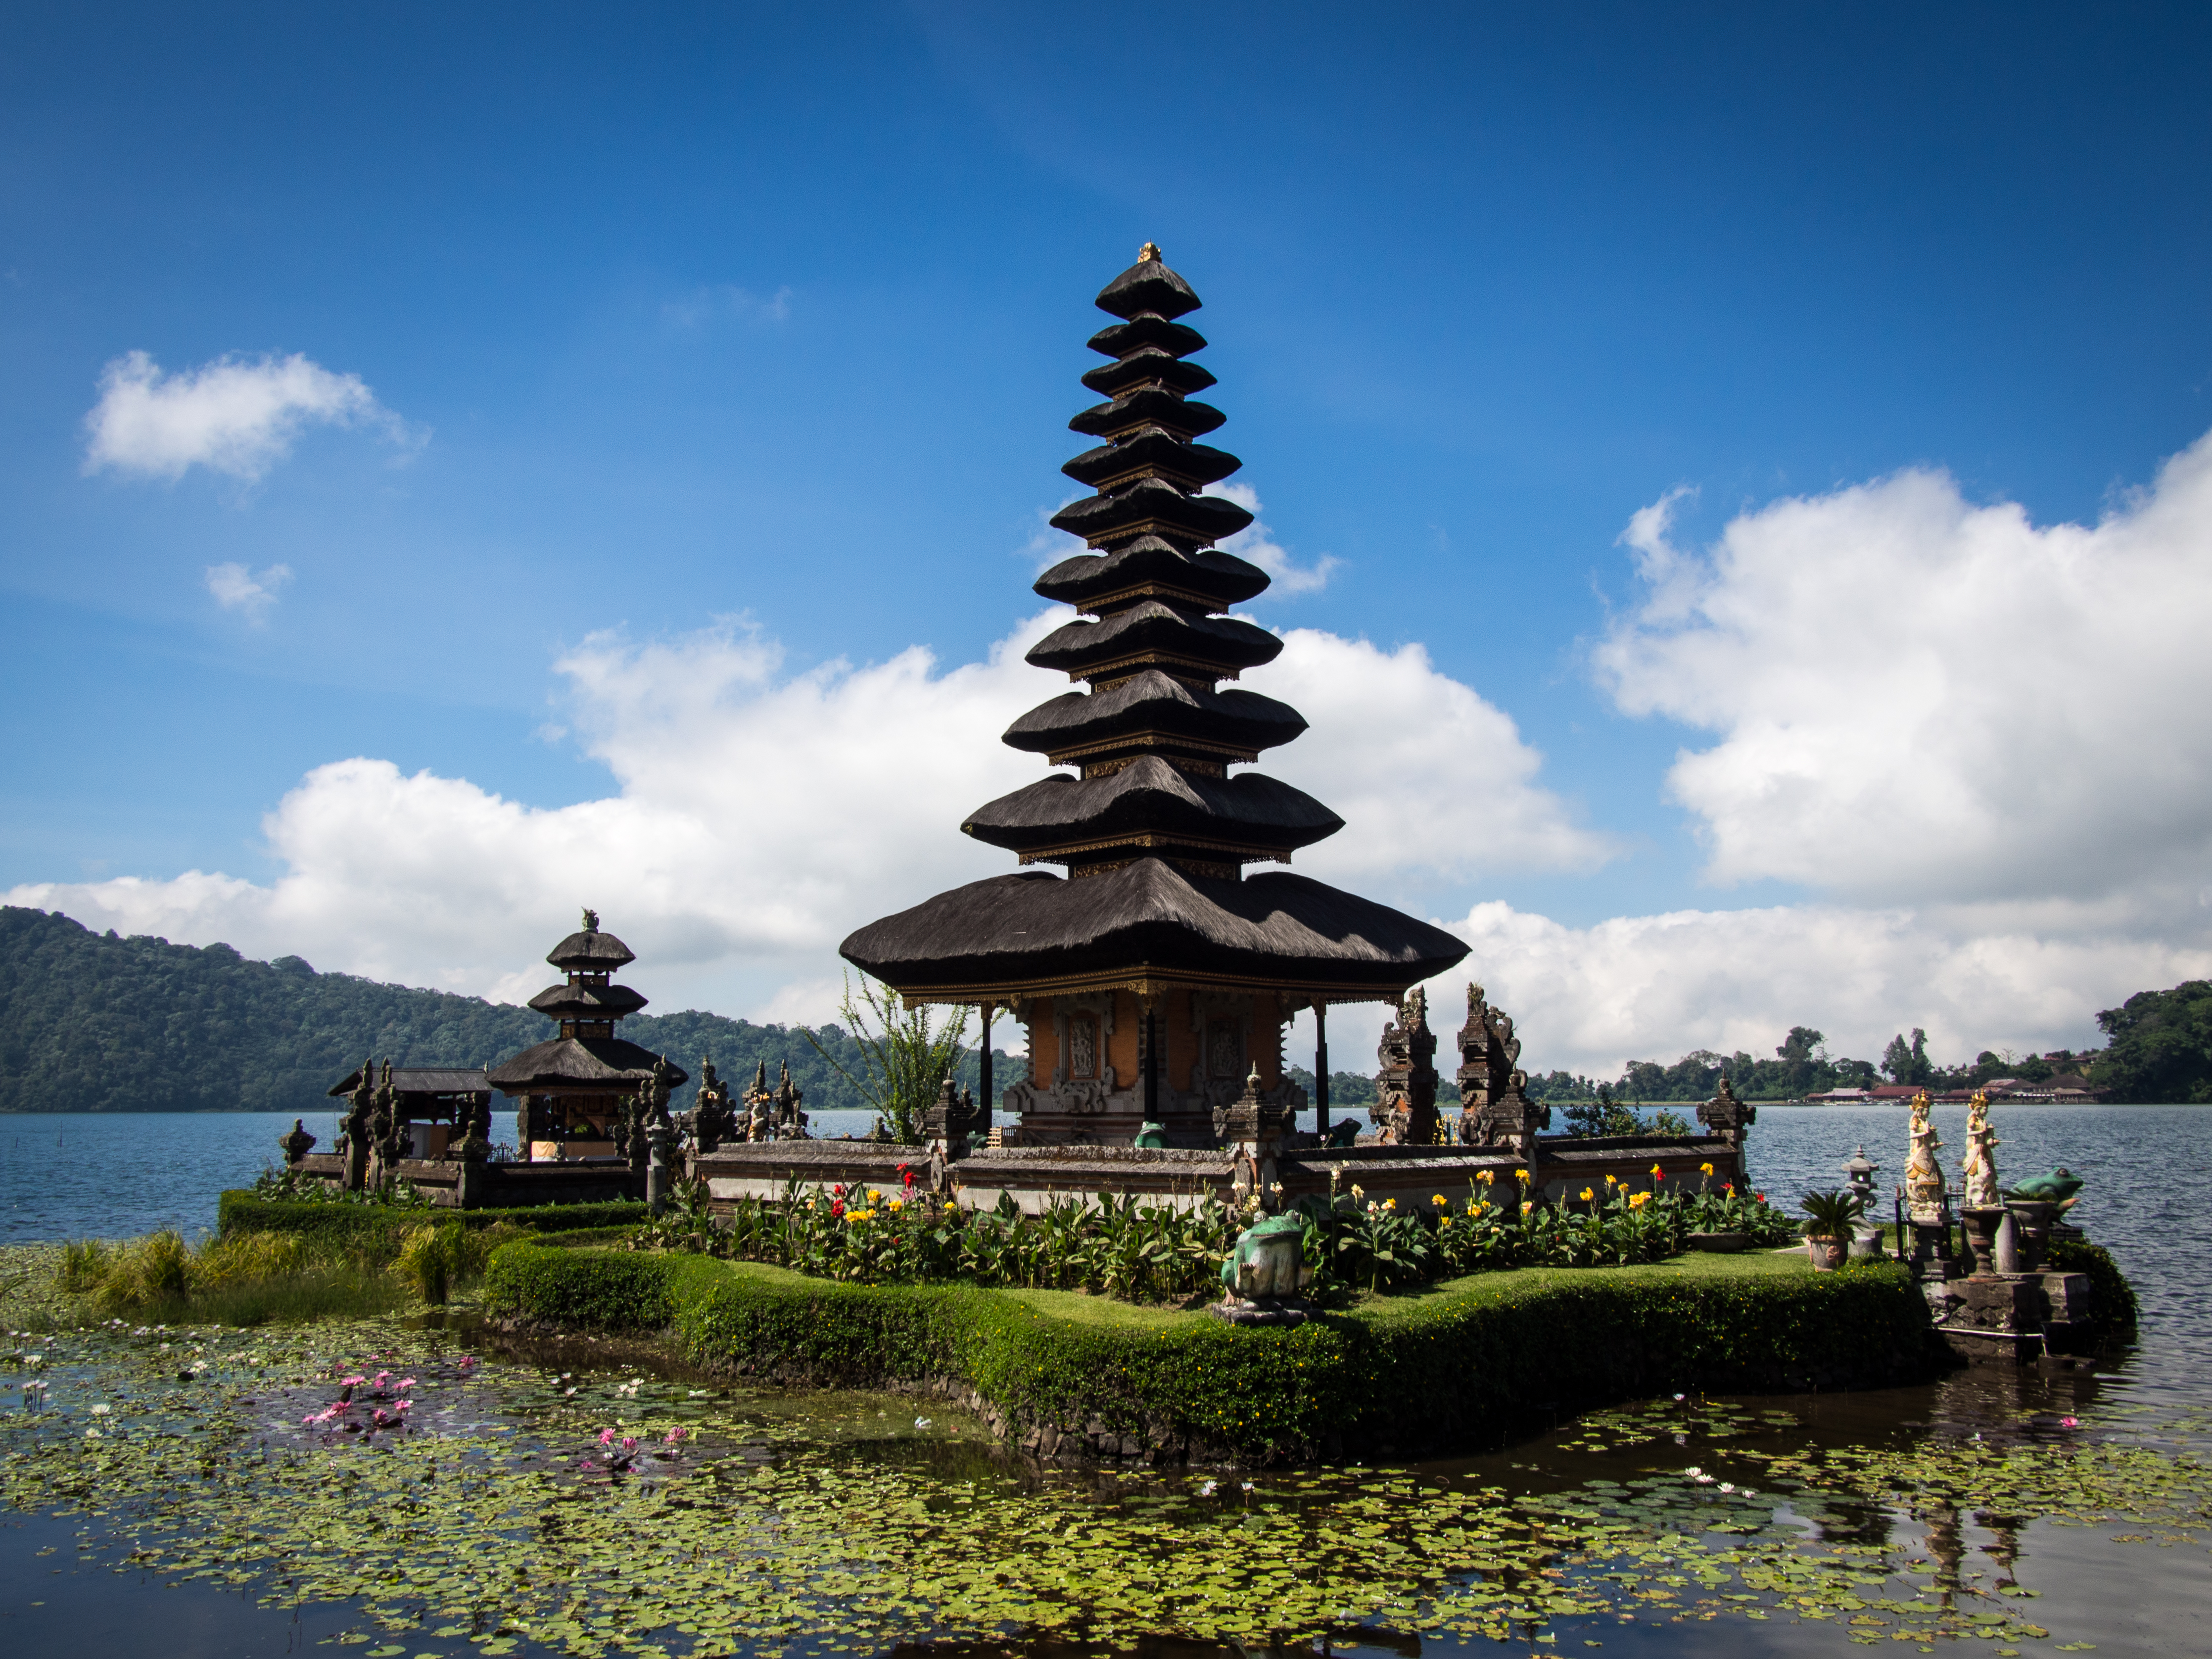 asia and tourism Asia, arrivals, tourist, tourism, report, receipts, international, visitors, airports, accommodation, food and drink, entertainment, shopping, services and goods.